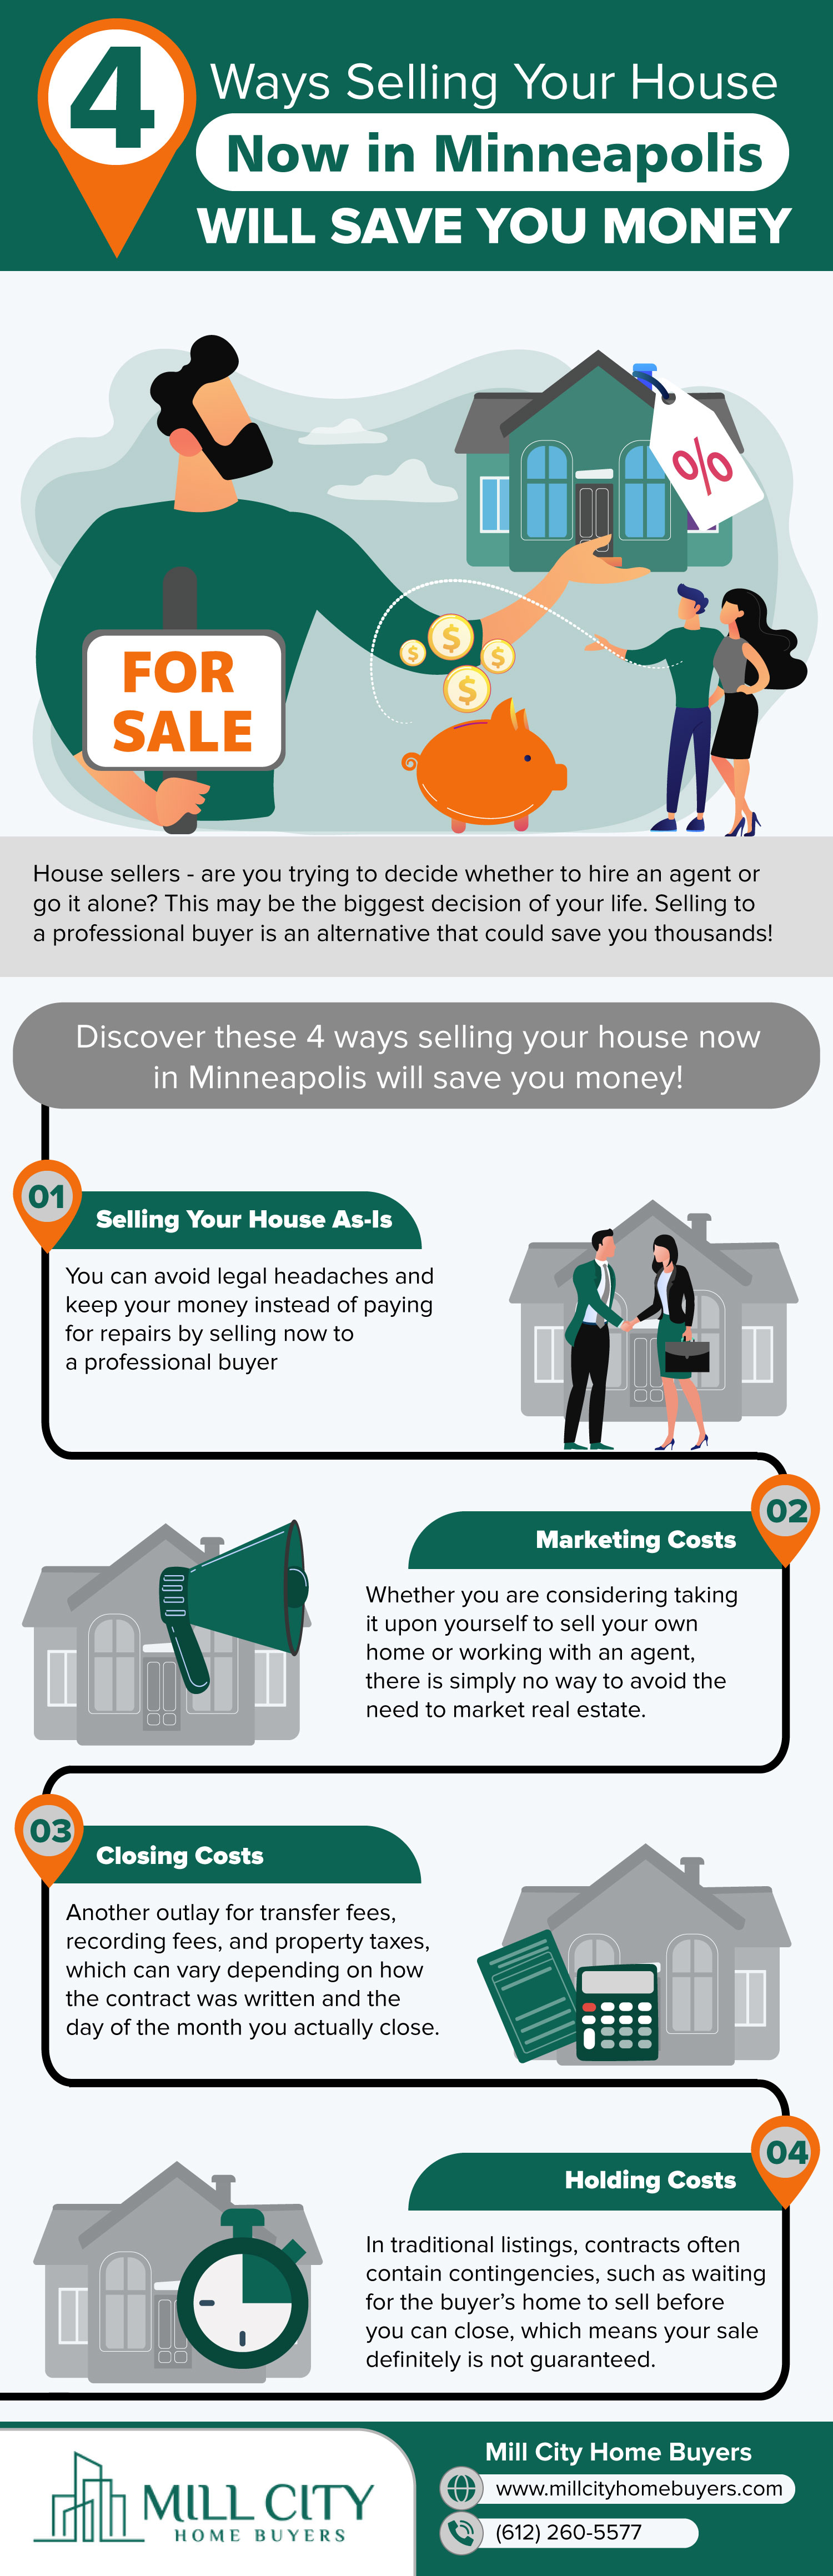 4 ways to selling your house now in Minneapolis will save you money